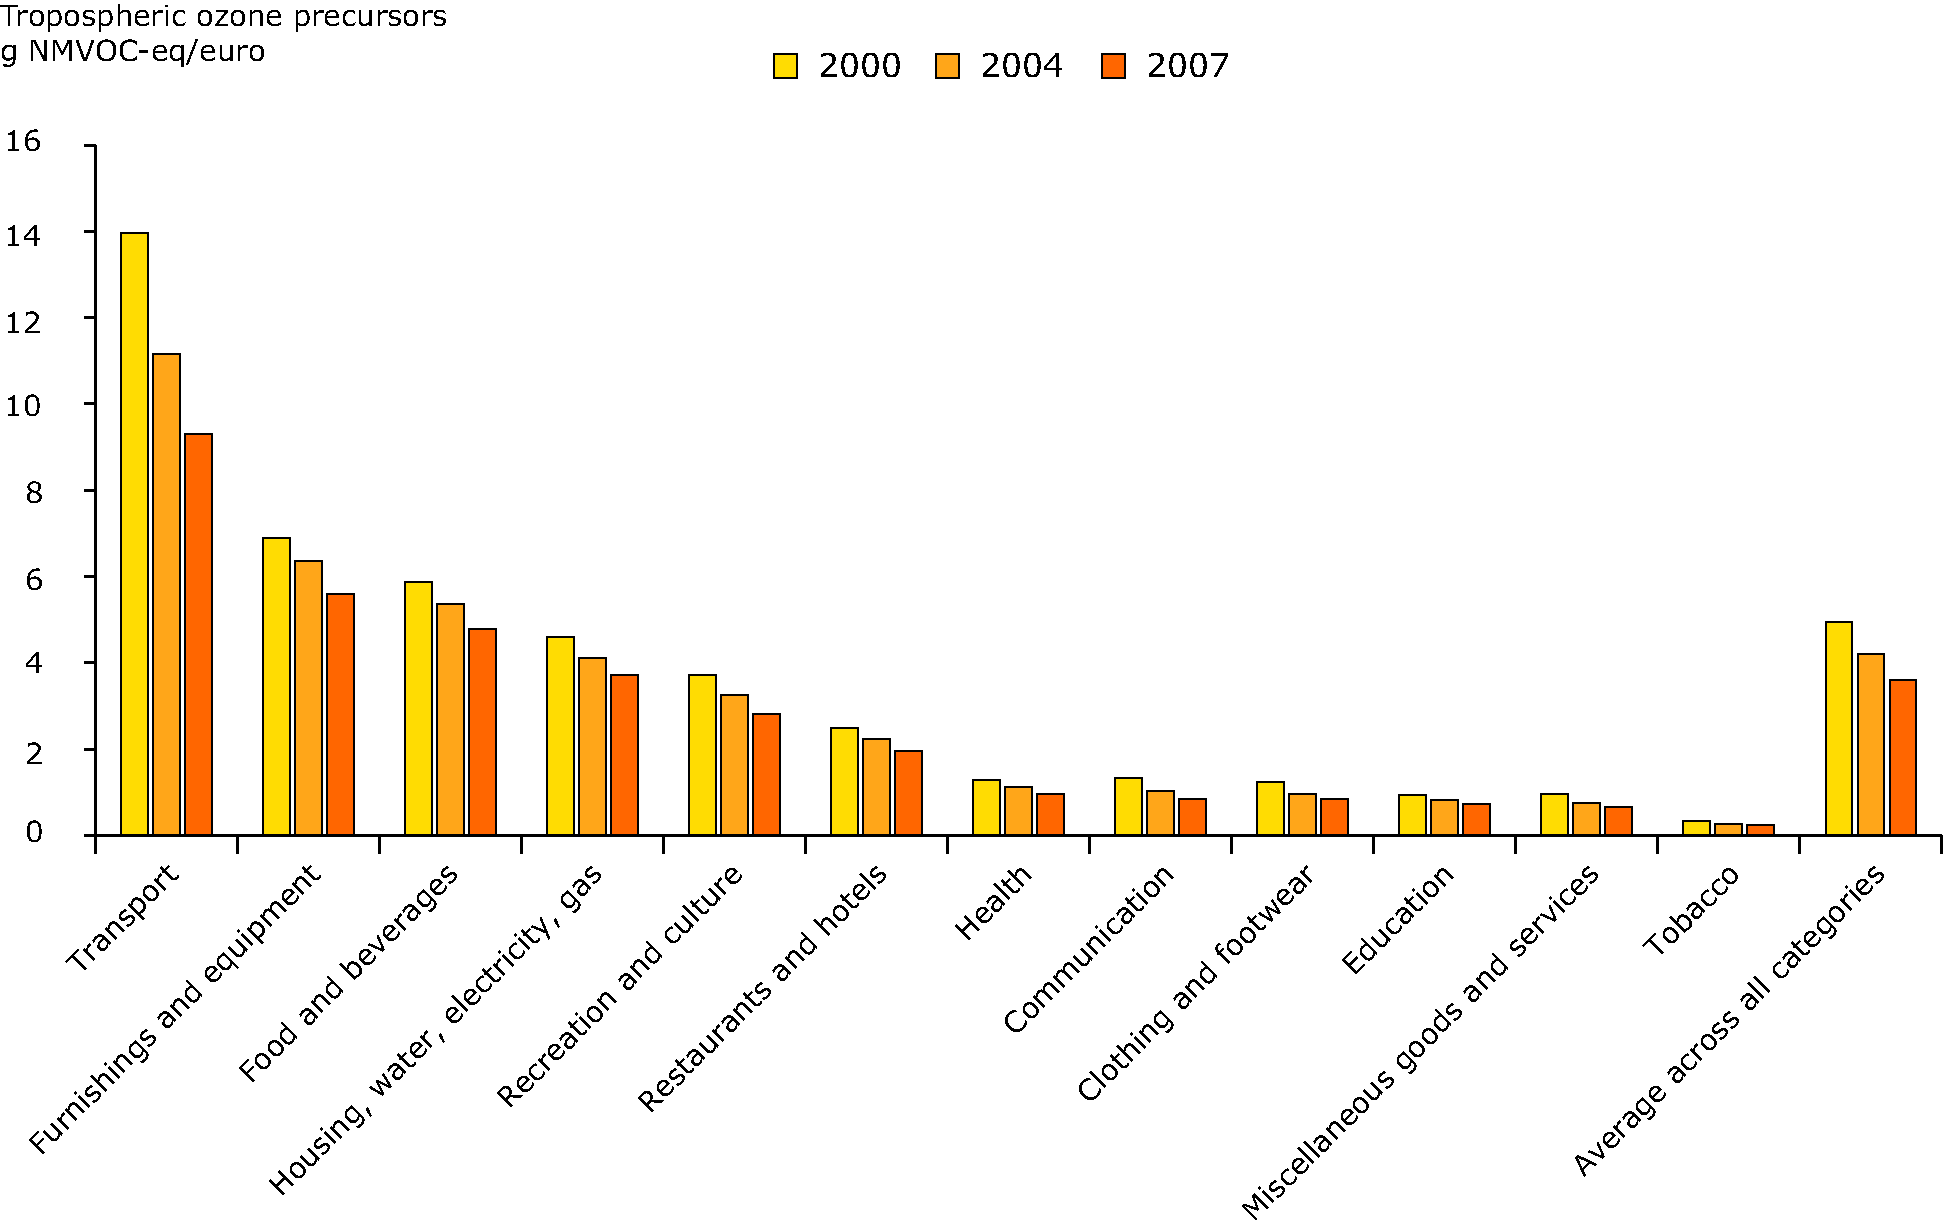 Tropospheric ozone precursor emissions induced by household consumption, per Euro spent of expenditure in 12 household consumption categories, 2000-2007